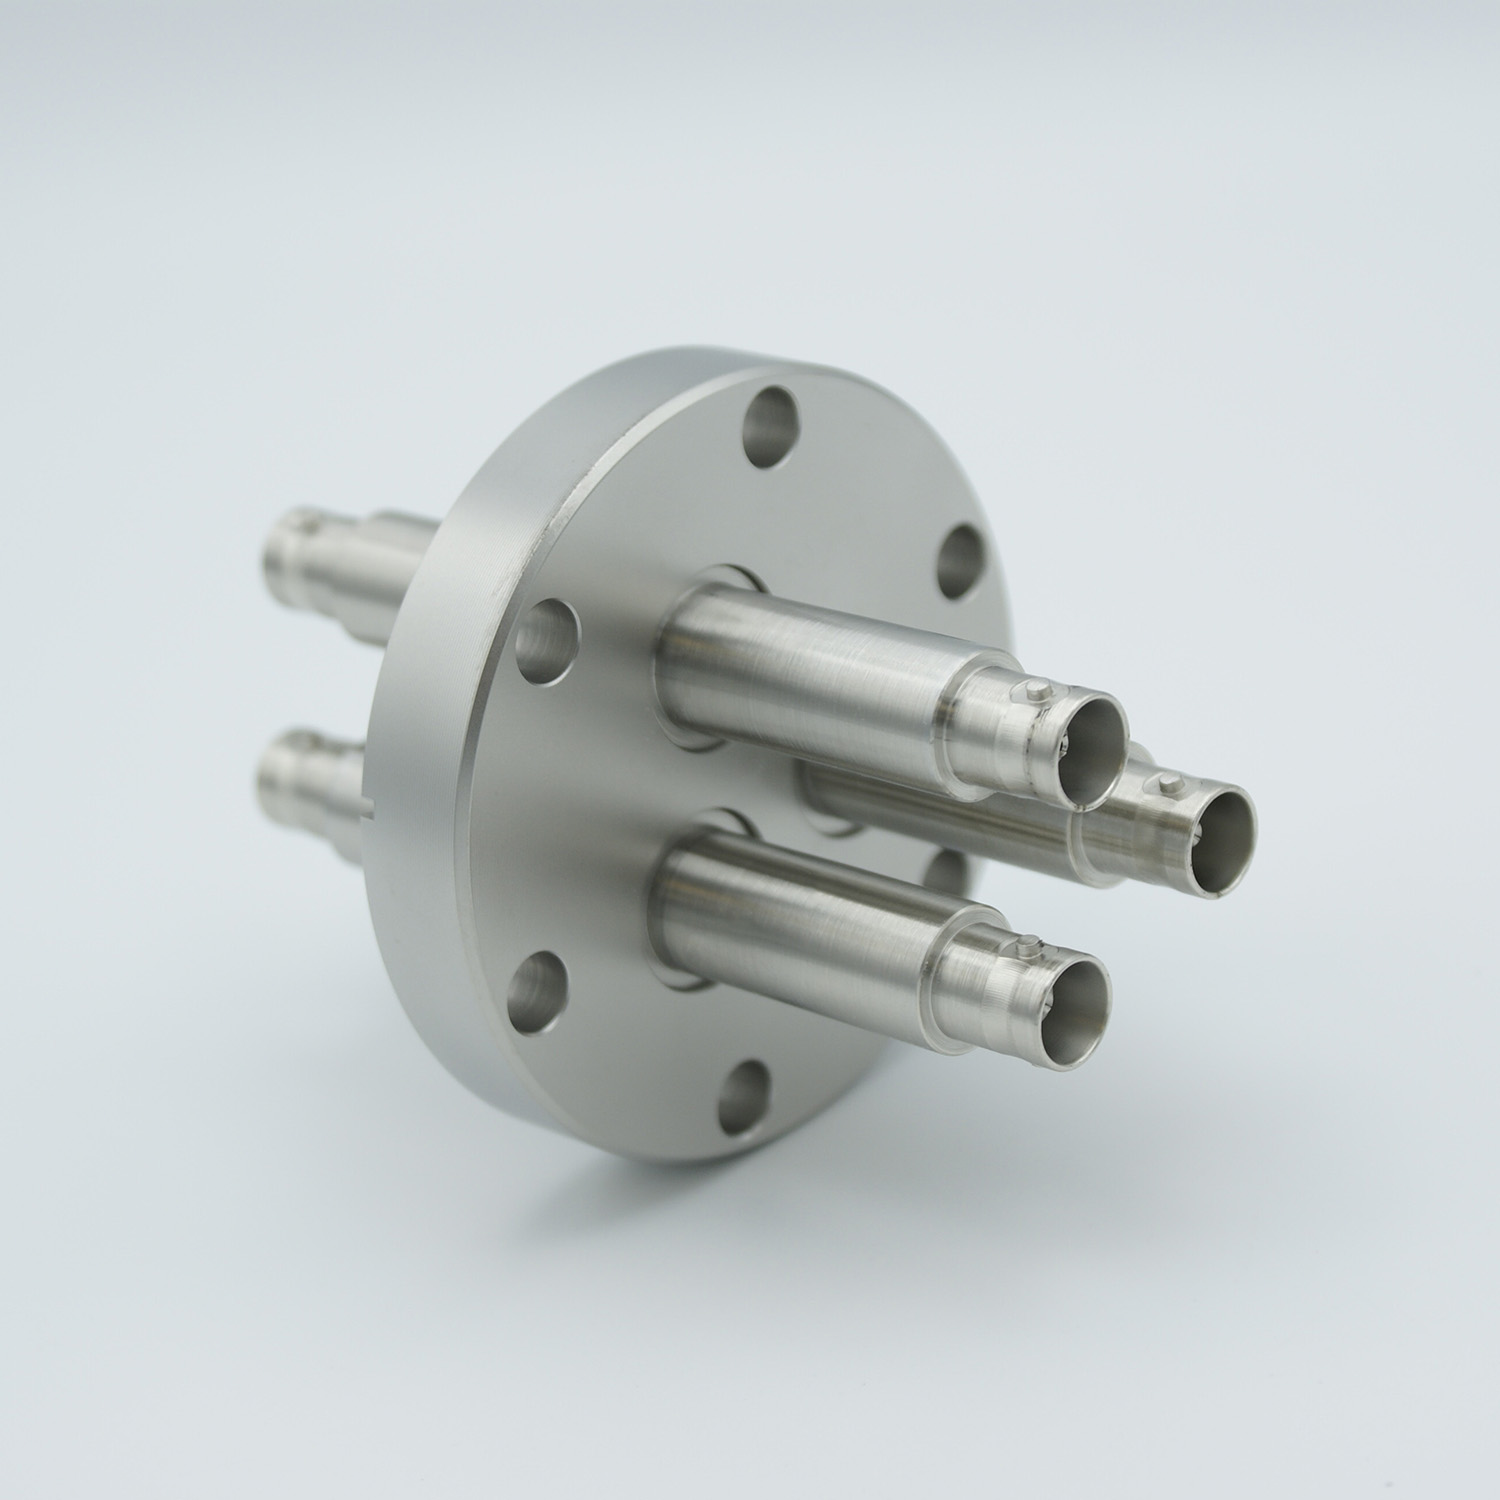 3 of grounded shield, double ended MHV feedthrough 5000V / 3 Amp, air side connector included, DN40CF